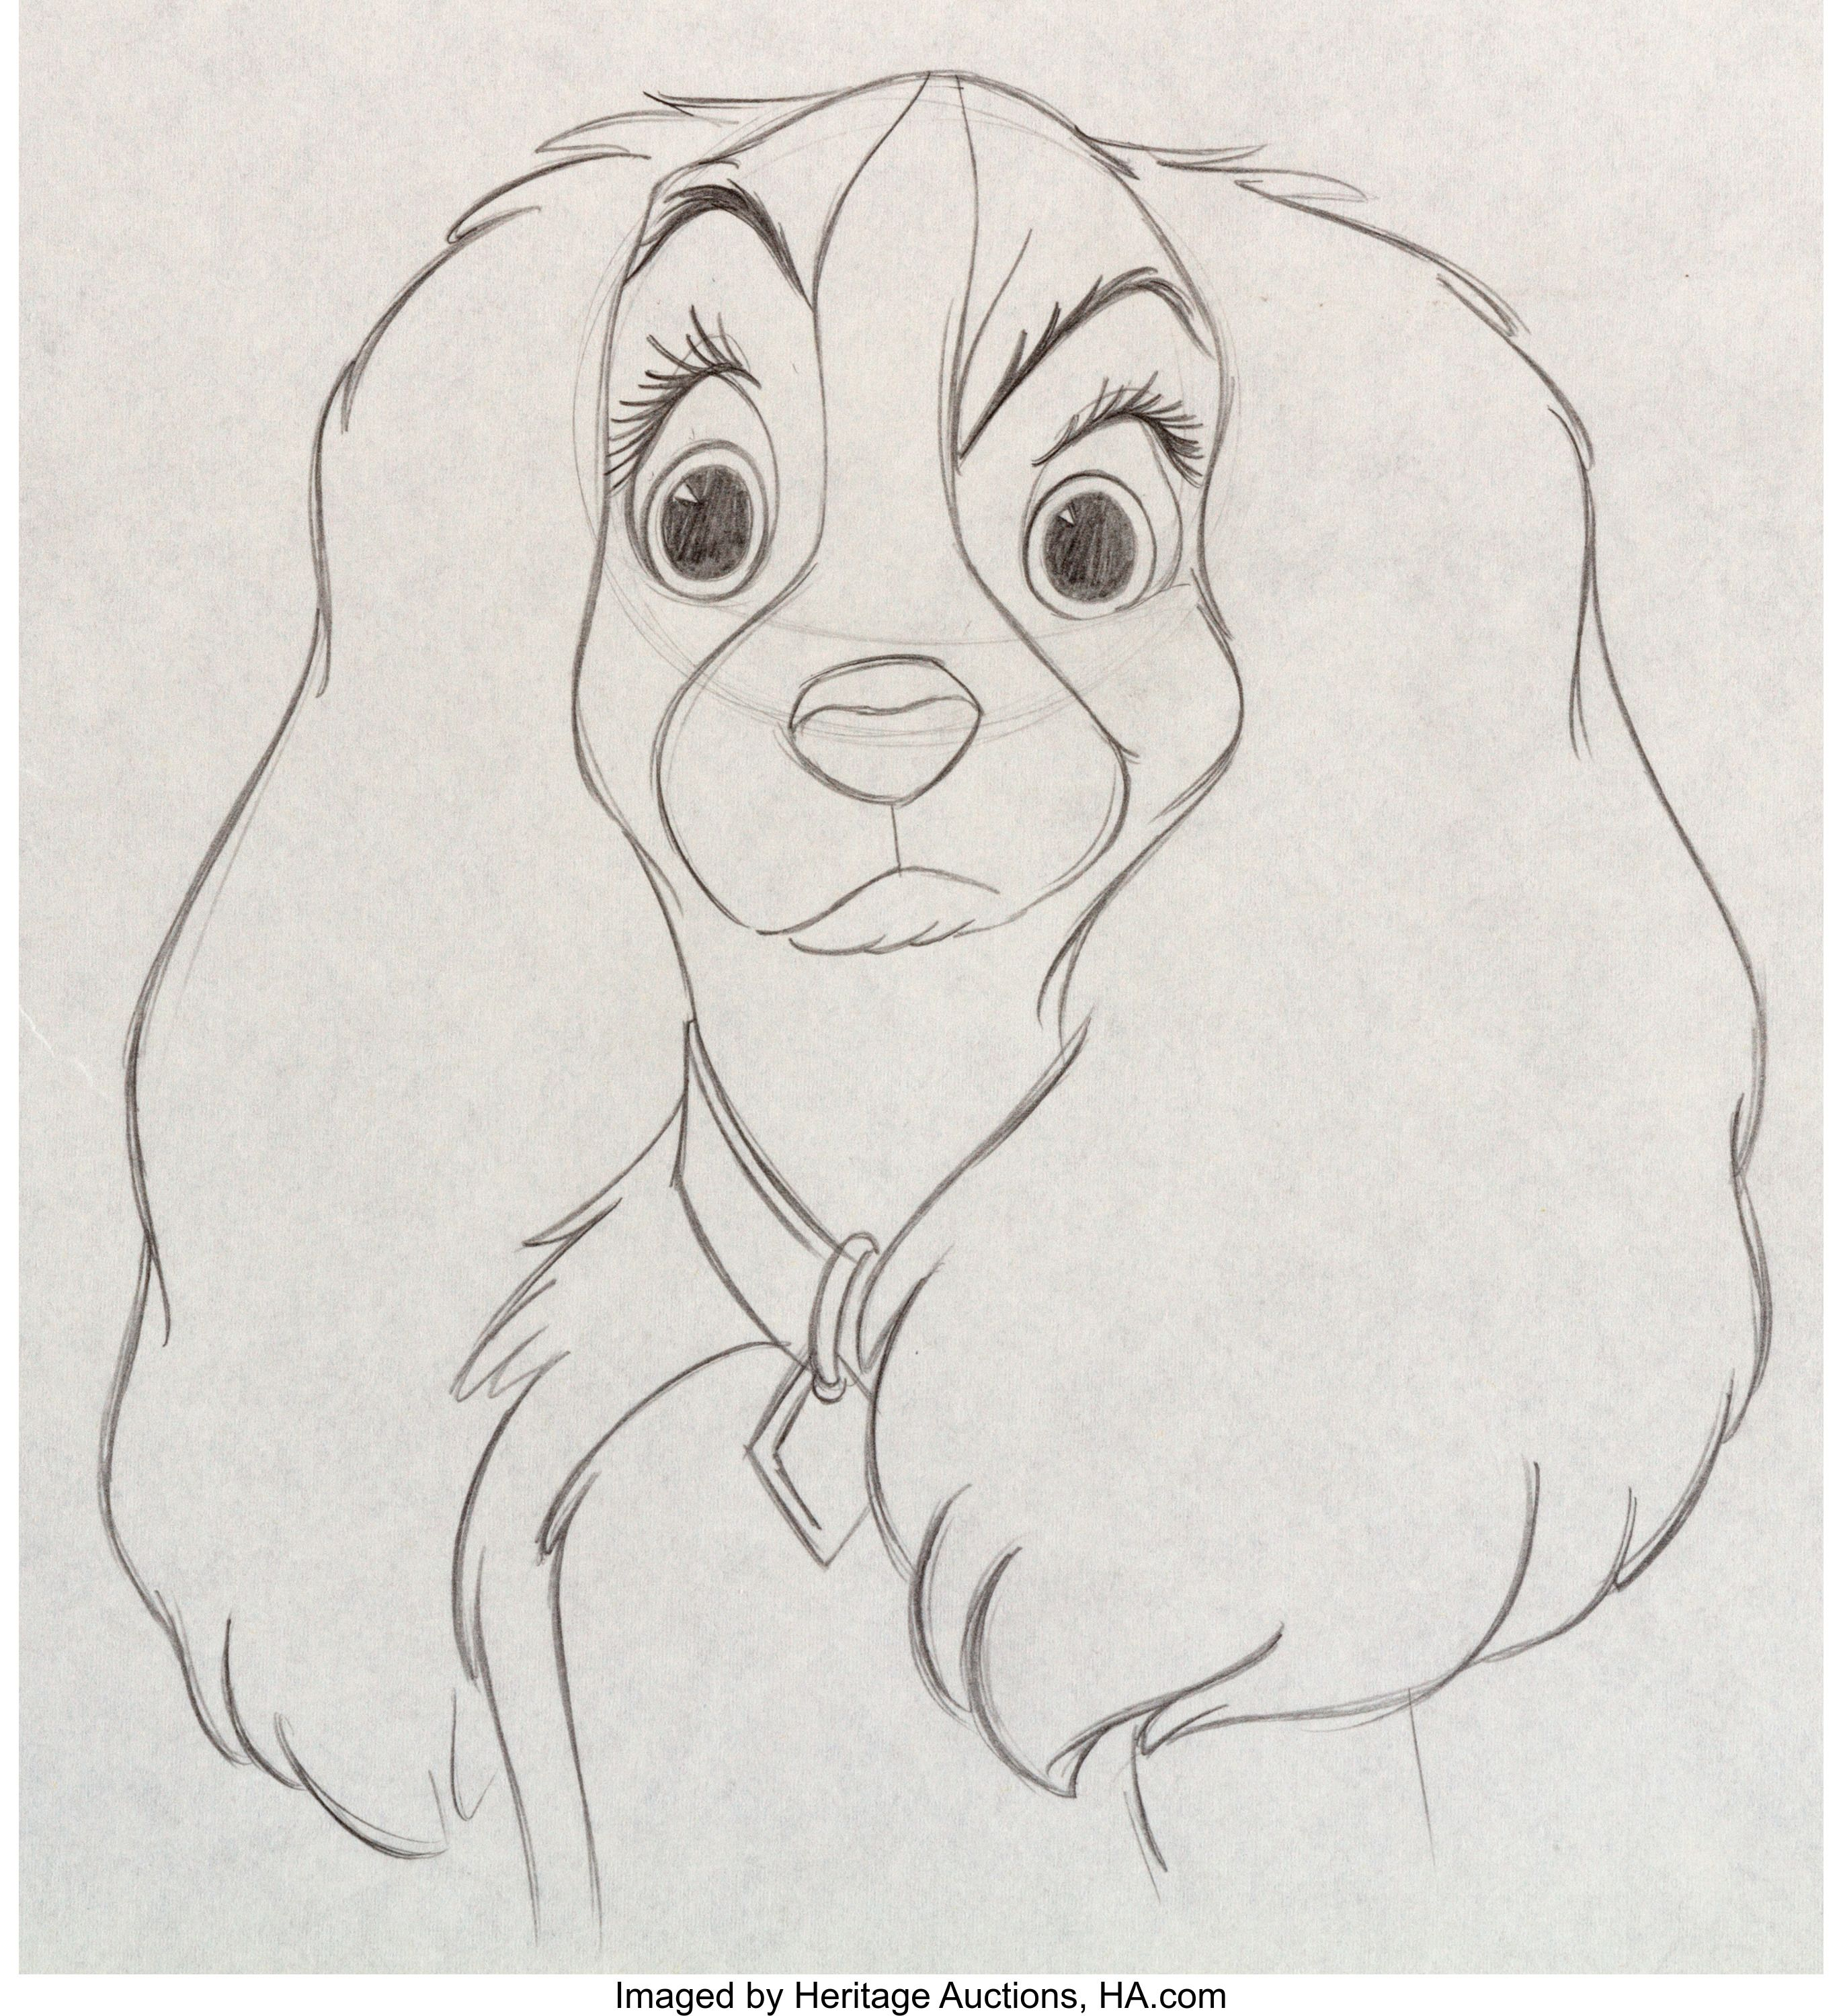 Lady And The Tramp Lady Animation Drawing Walt Disney 1955 Disney Character Drawings Disney Art Drawings Disney Canvas Art